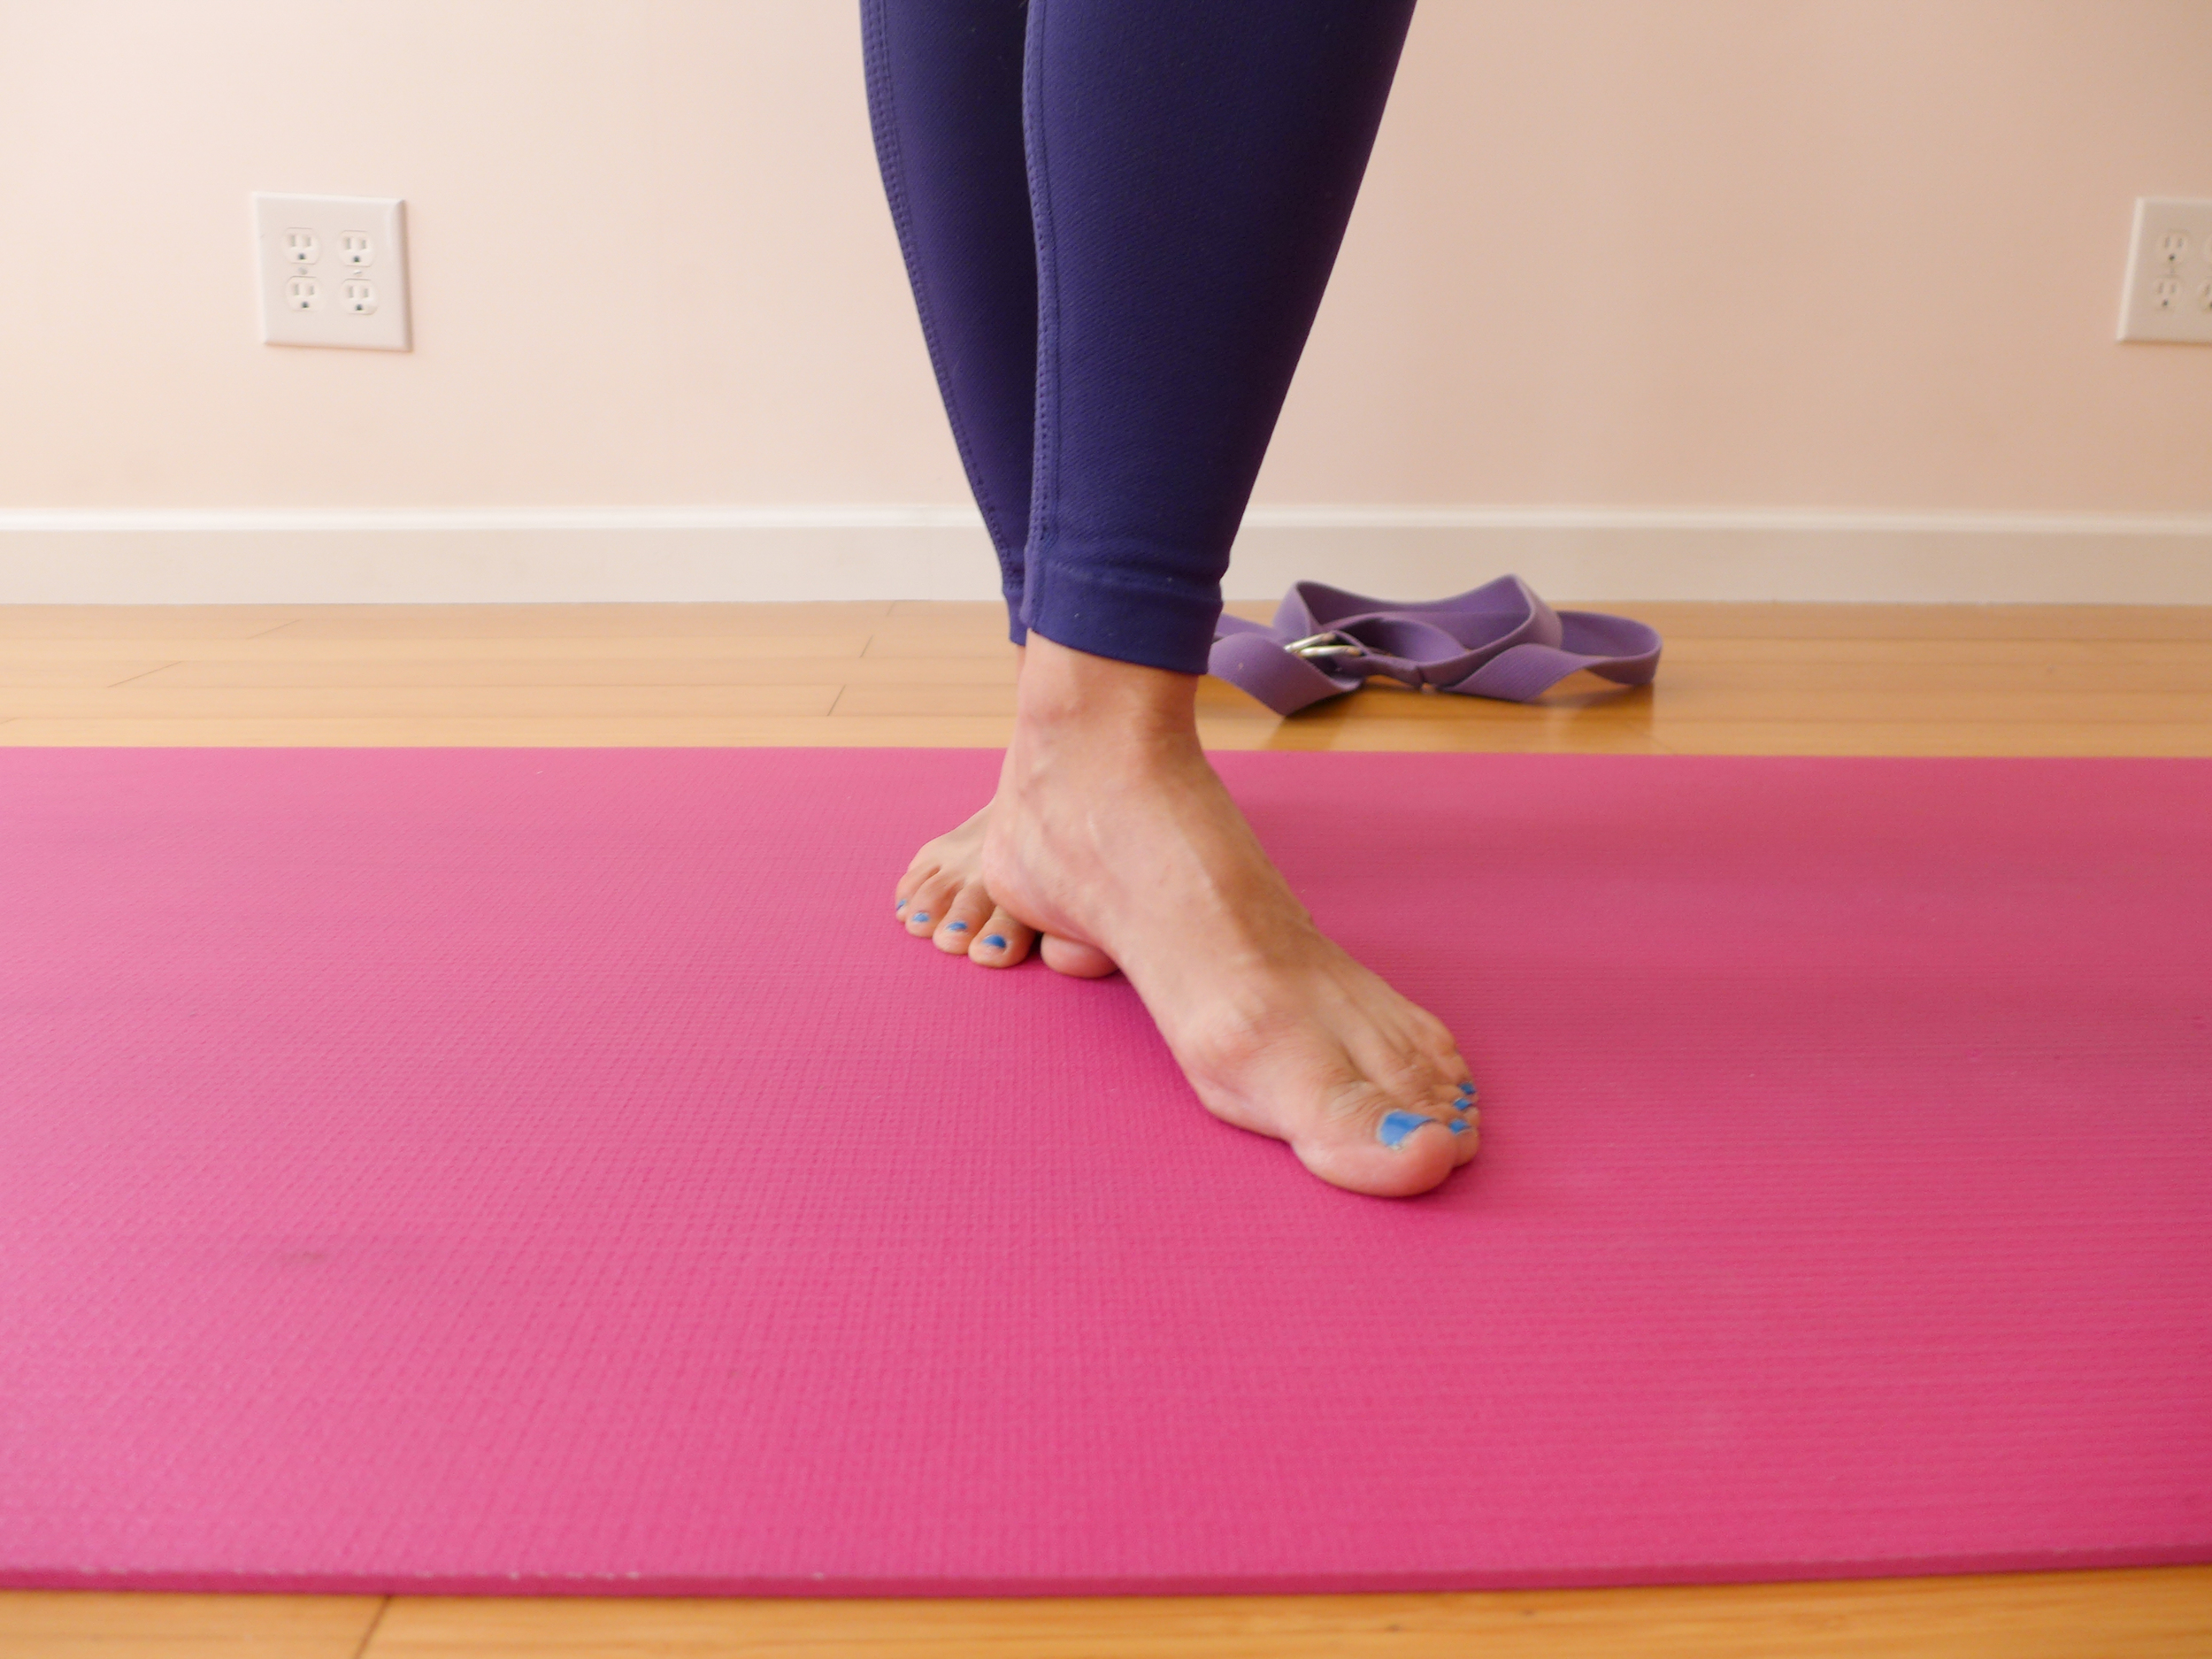 6. TOE TAPS (shin splint prevention). Set up in this position and tap your left toes up and down as quickly as you can, then switch sides.